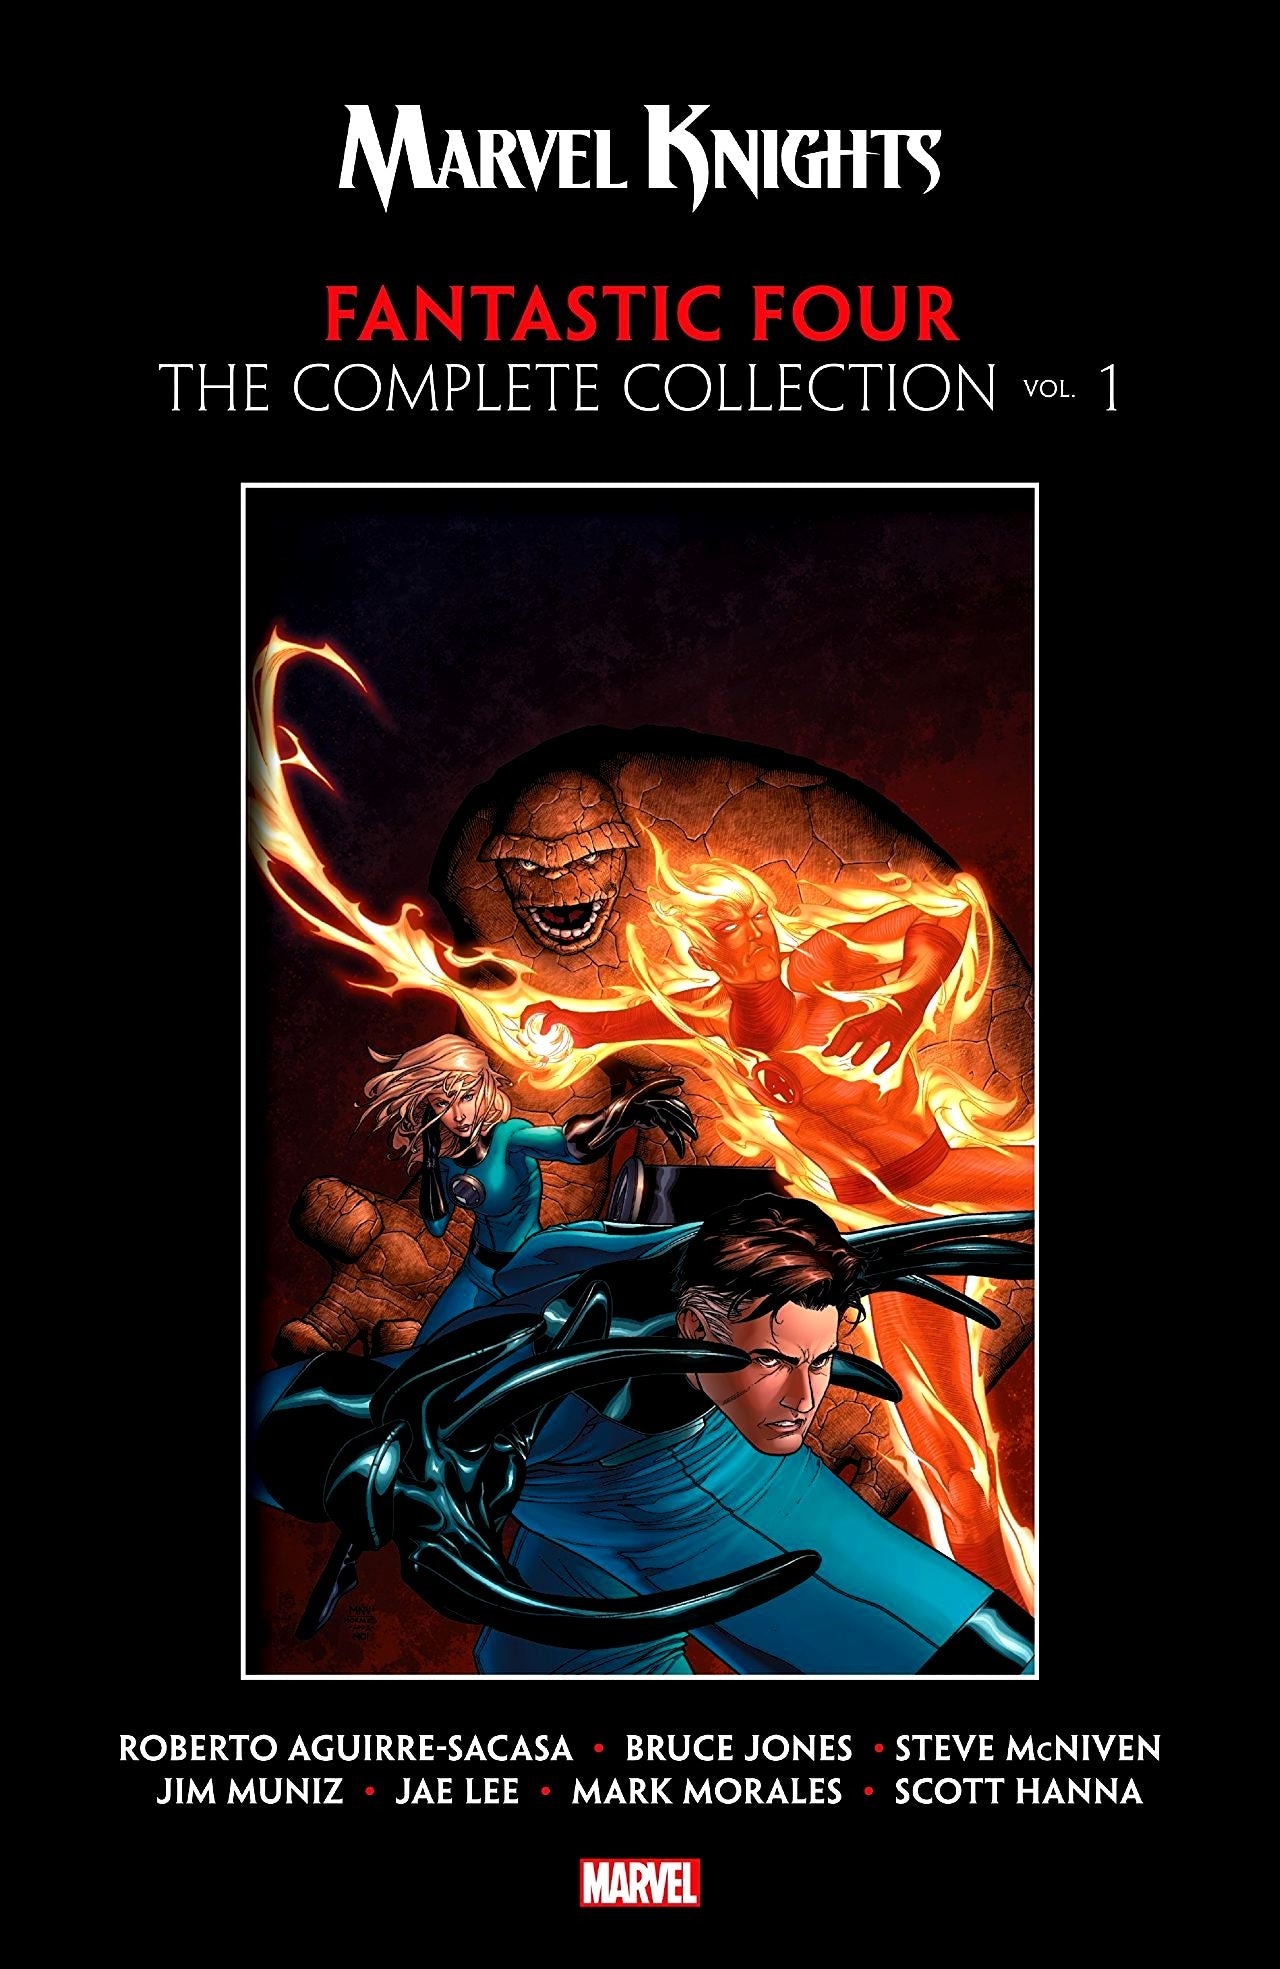 Marvel Knights: Fantastic Four - The Complete Collection Volume 1